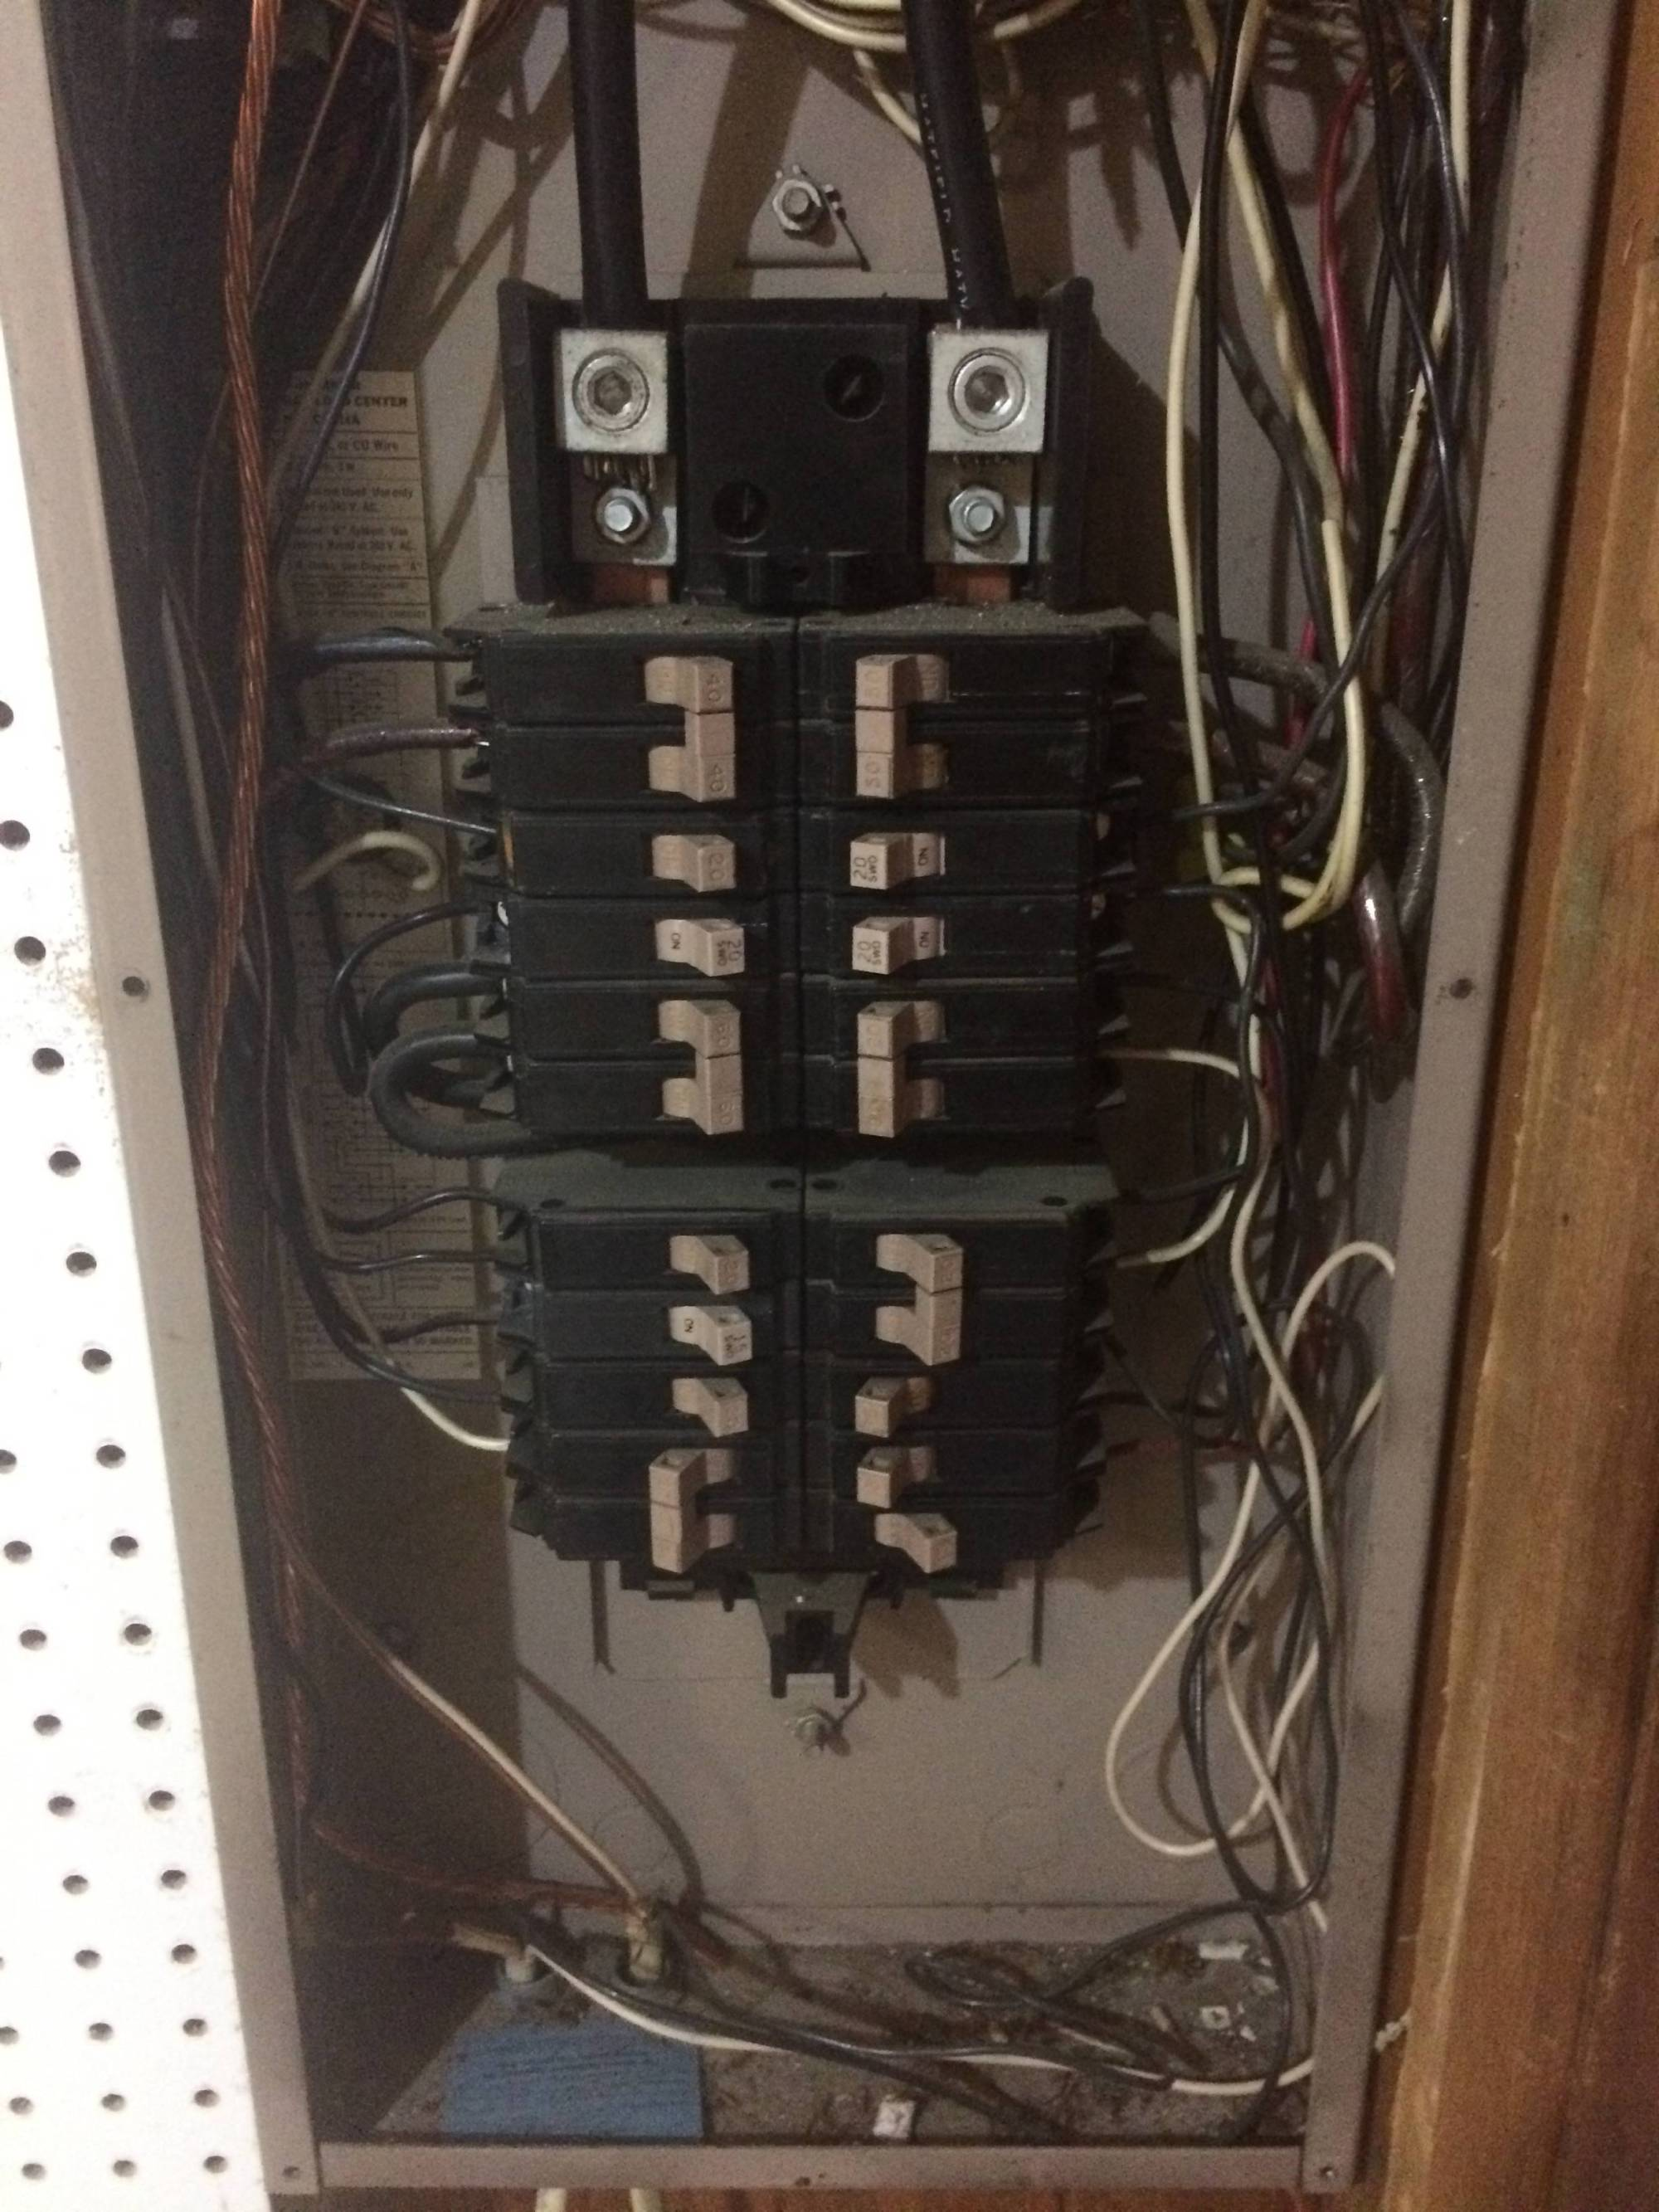 hight resolution of panel incoming wiring connectionscutler hammer panel diagram wiringwiring a cutler hammer breaker box 2 wiring diagram